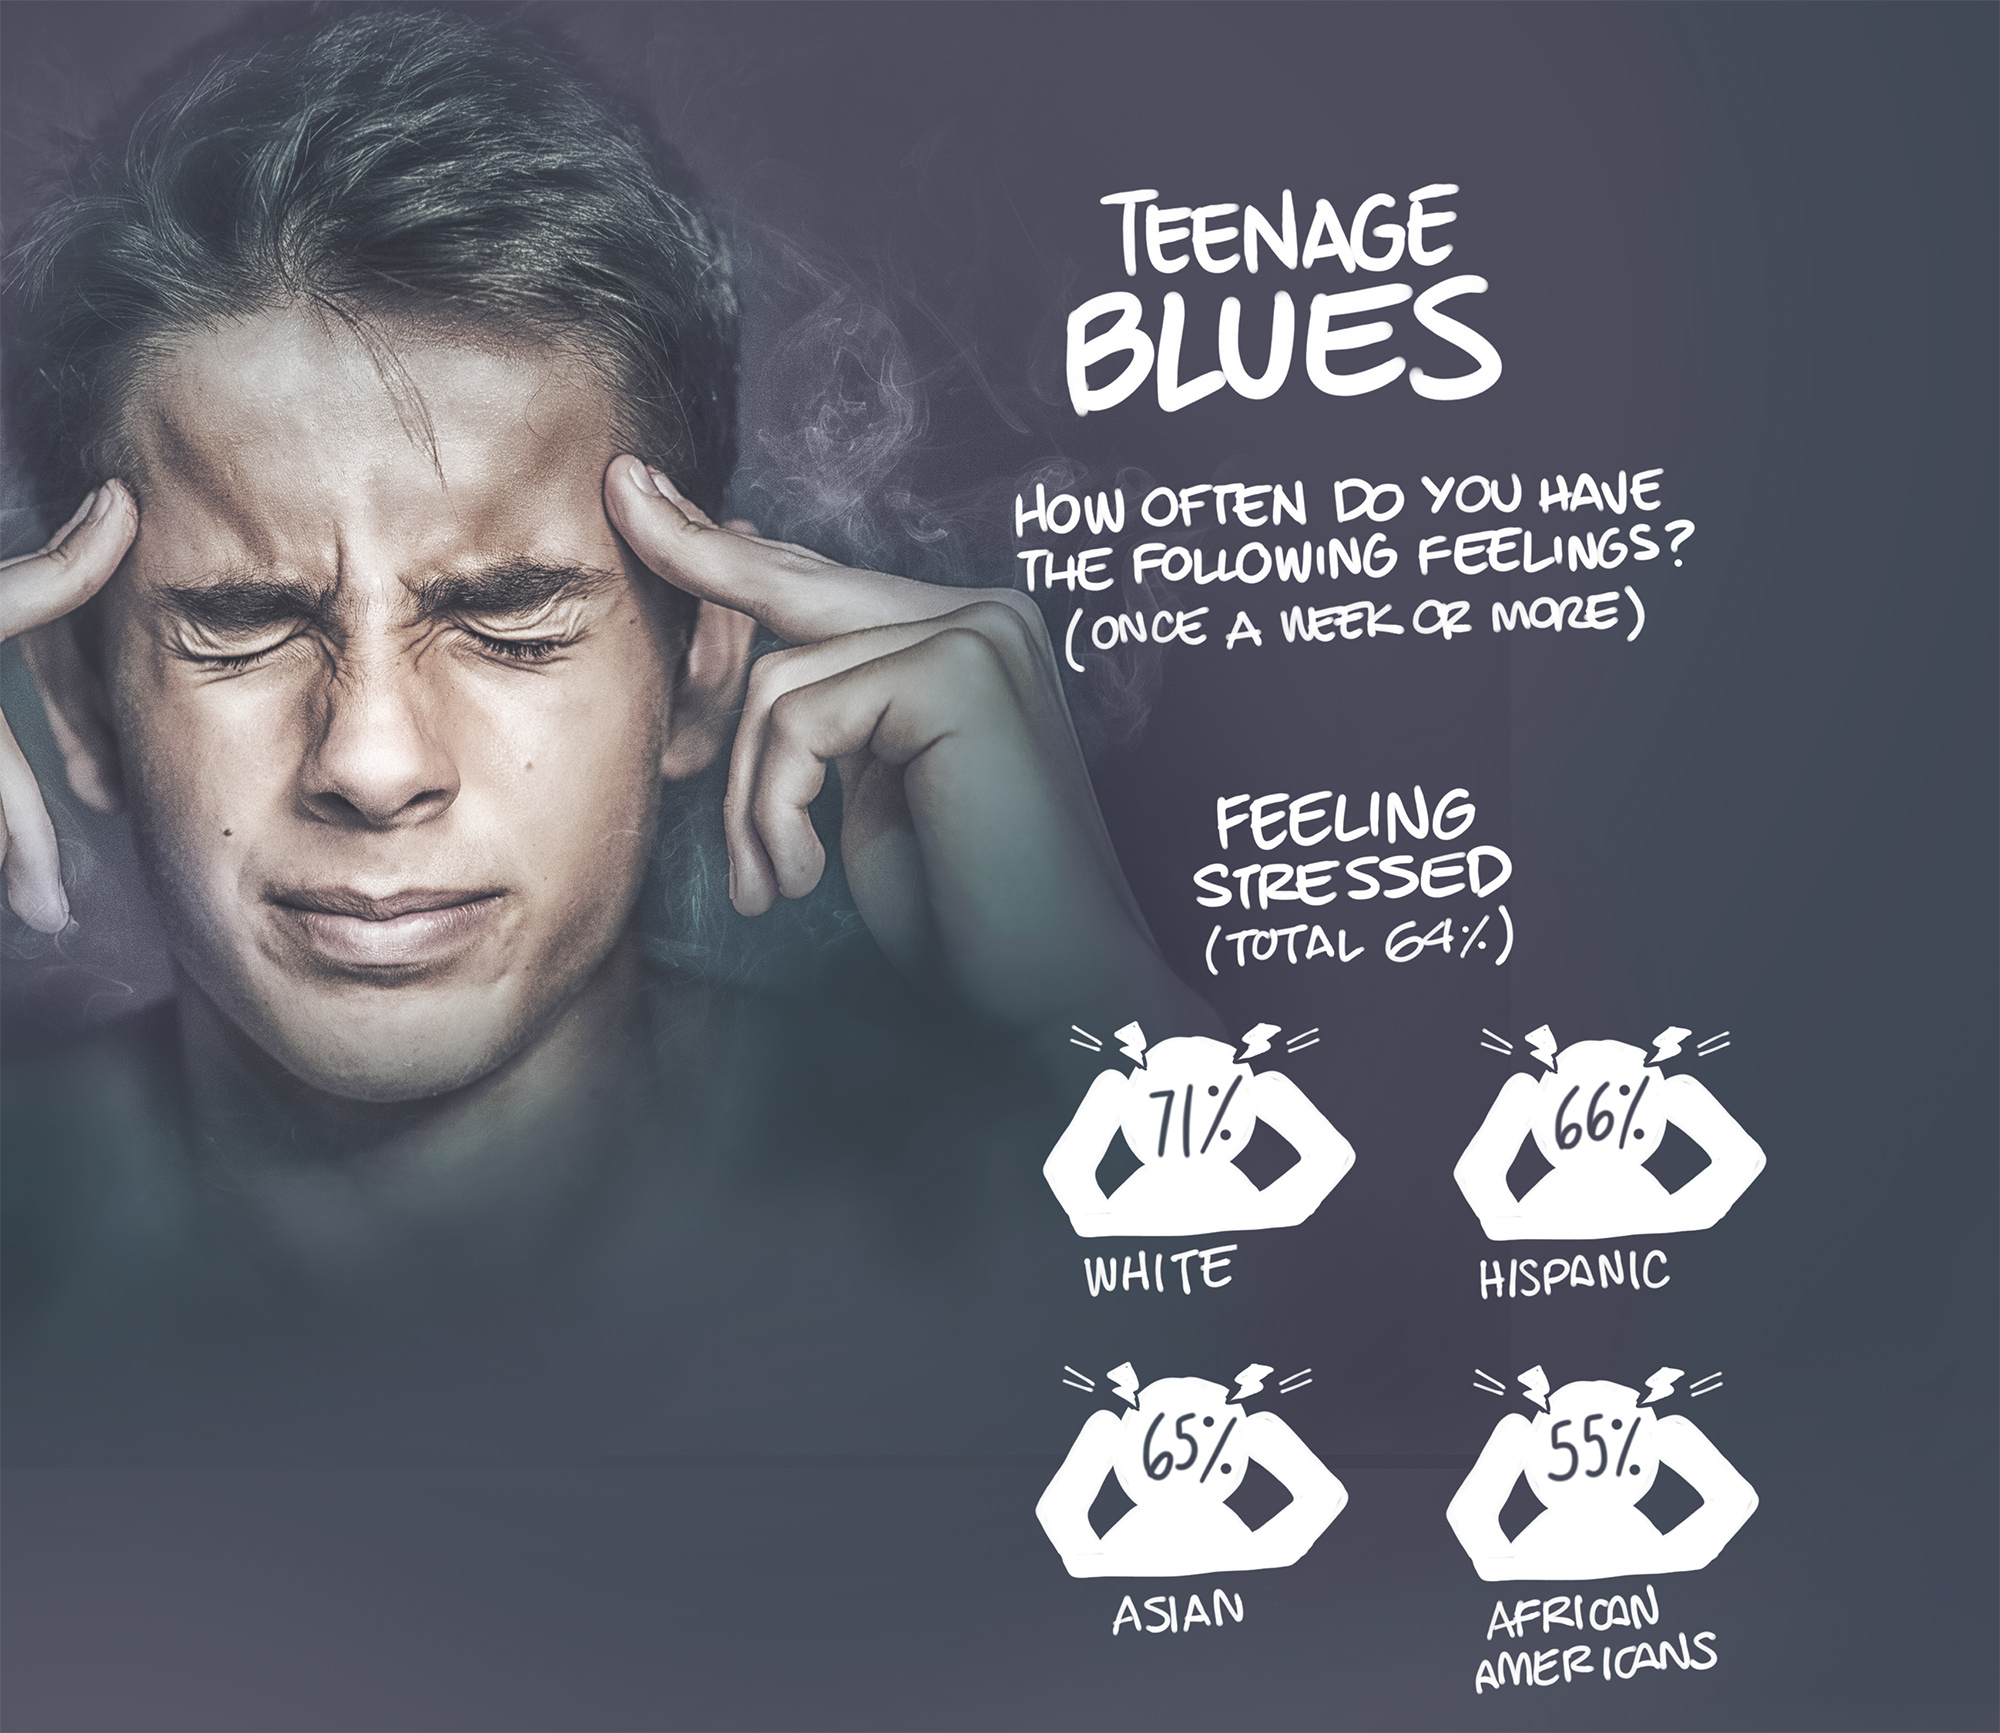 Teenage blues. How often do you have the following feelings? (once a week or more). Feeling stressed (Total 64%). White 71%. Hispanic 66%. Asian 65%. African Americans 55%